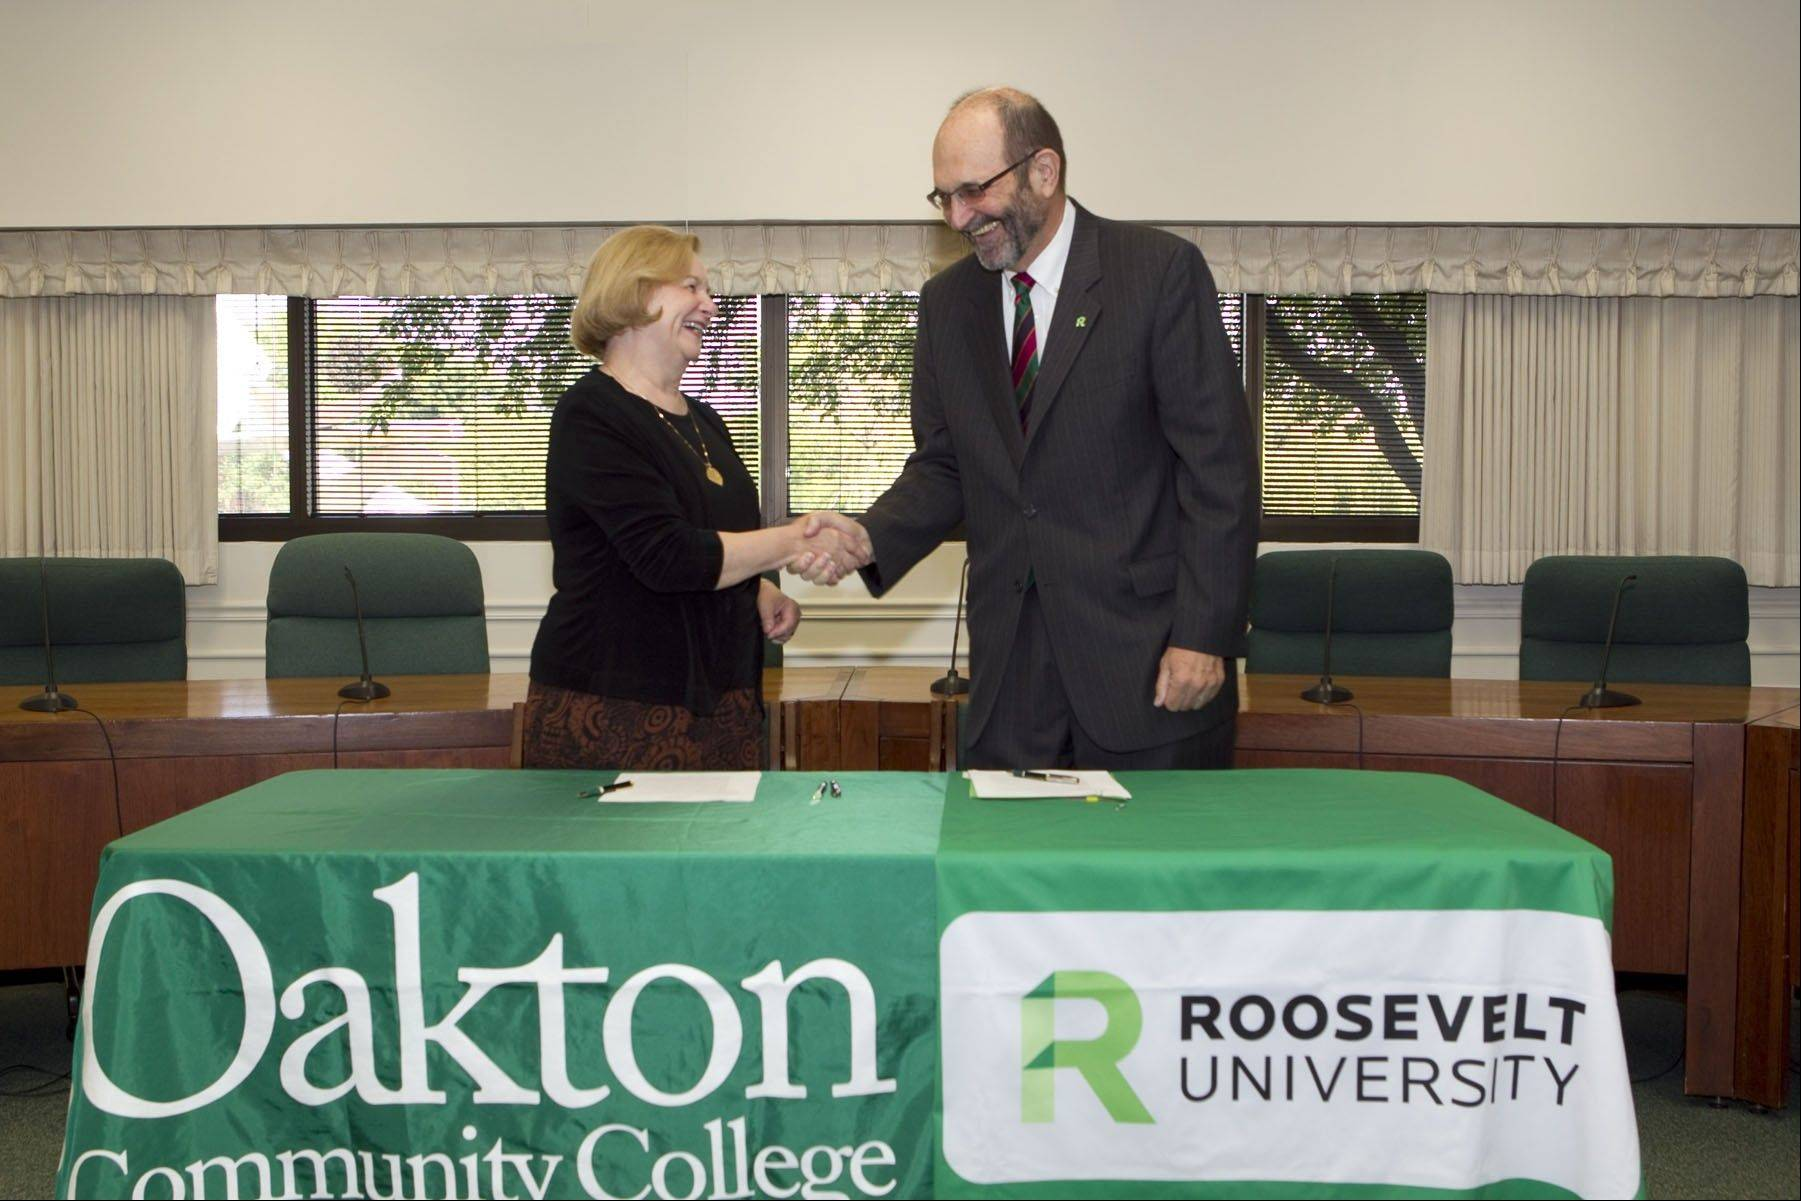 Oakton Community College President Margaret B. Lee and Roosevelt University President Chuck Middleton seal the deal with a handshake on Wednesday.